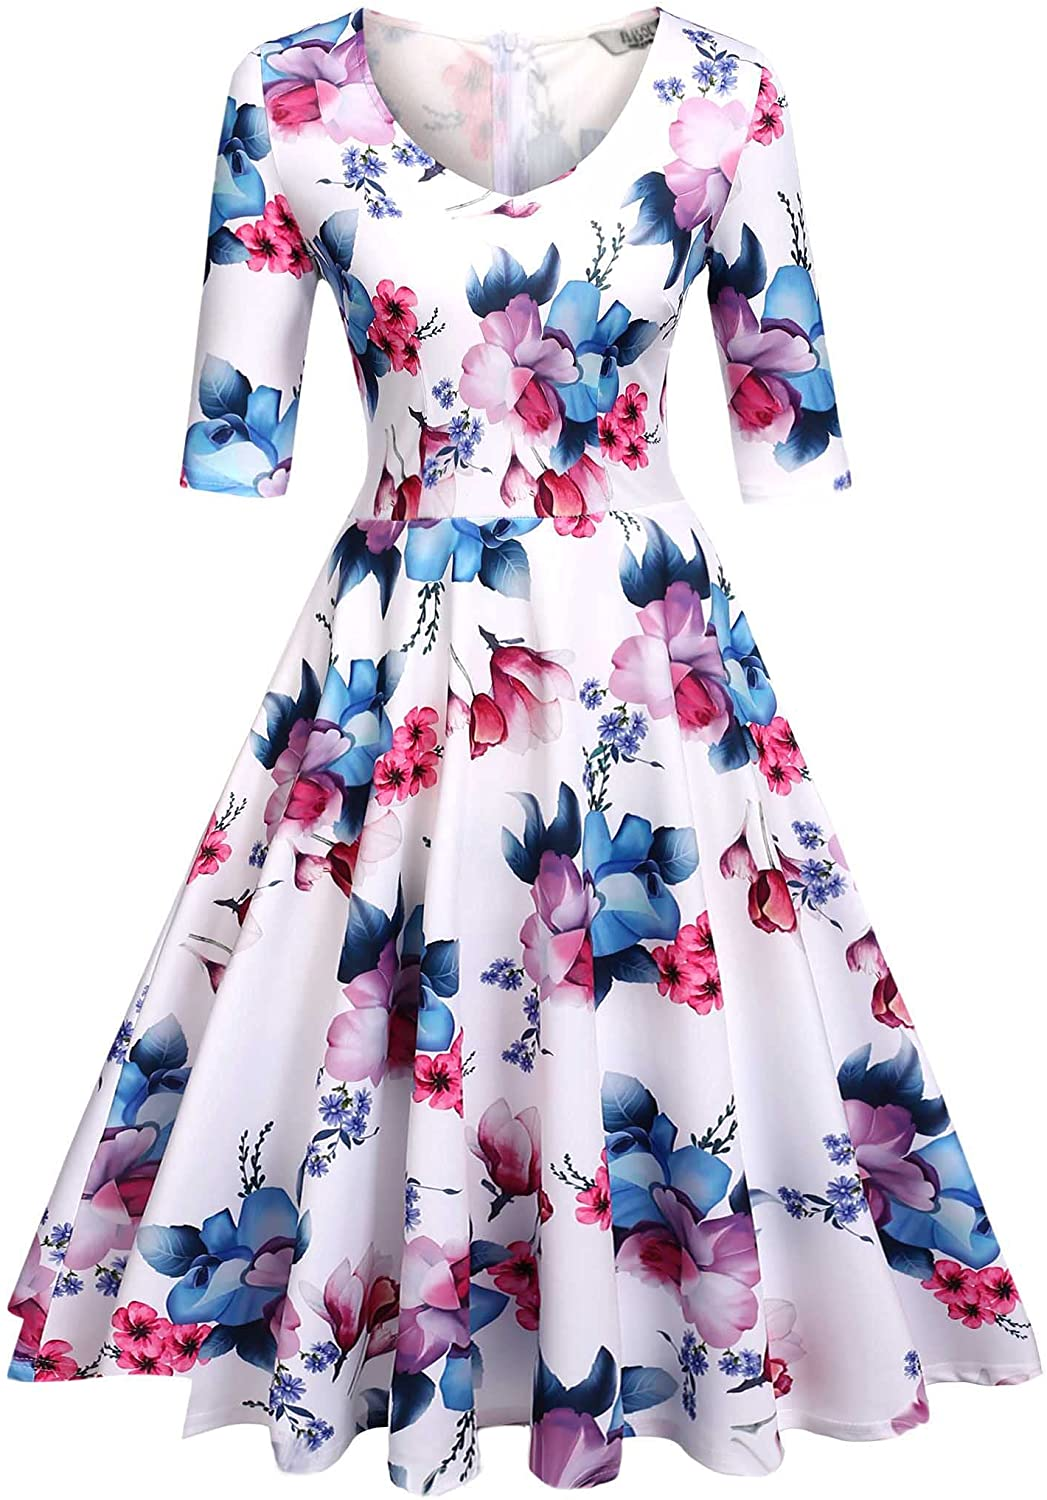 ELESOL Women's Half Cheap mail order shopping Sleeve Swing Dress Line Coc Max 89% OFF Vintage Floral A